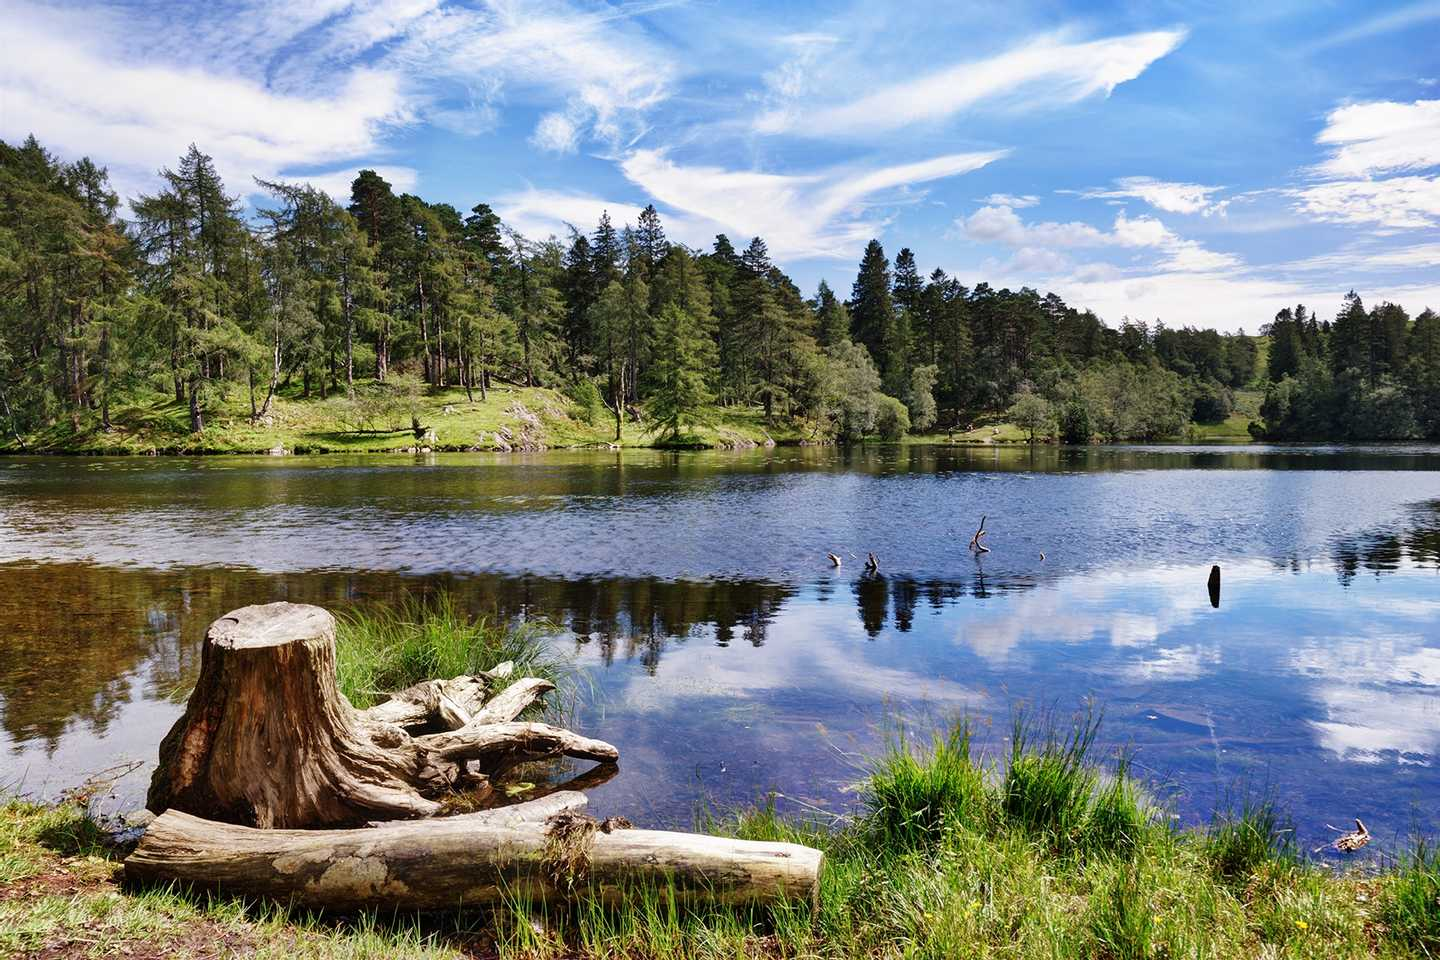 Picturesque Tarn Hows